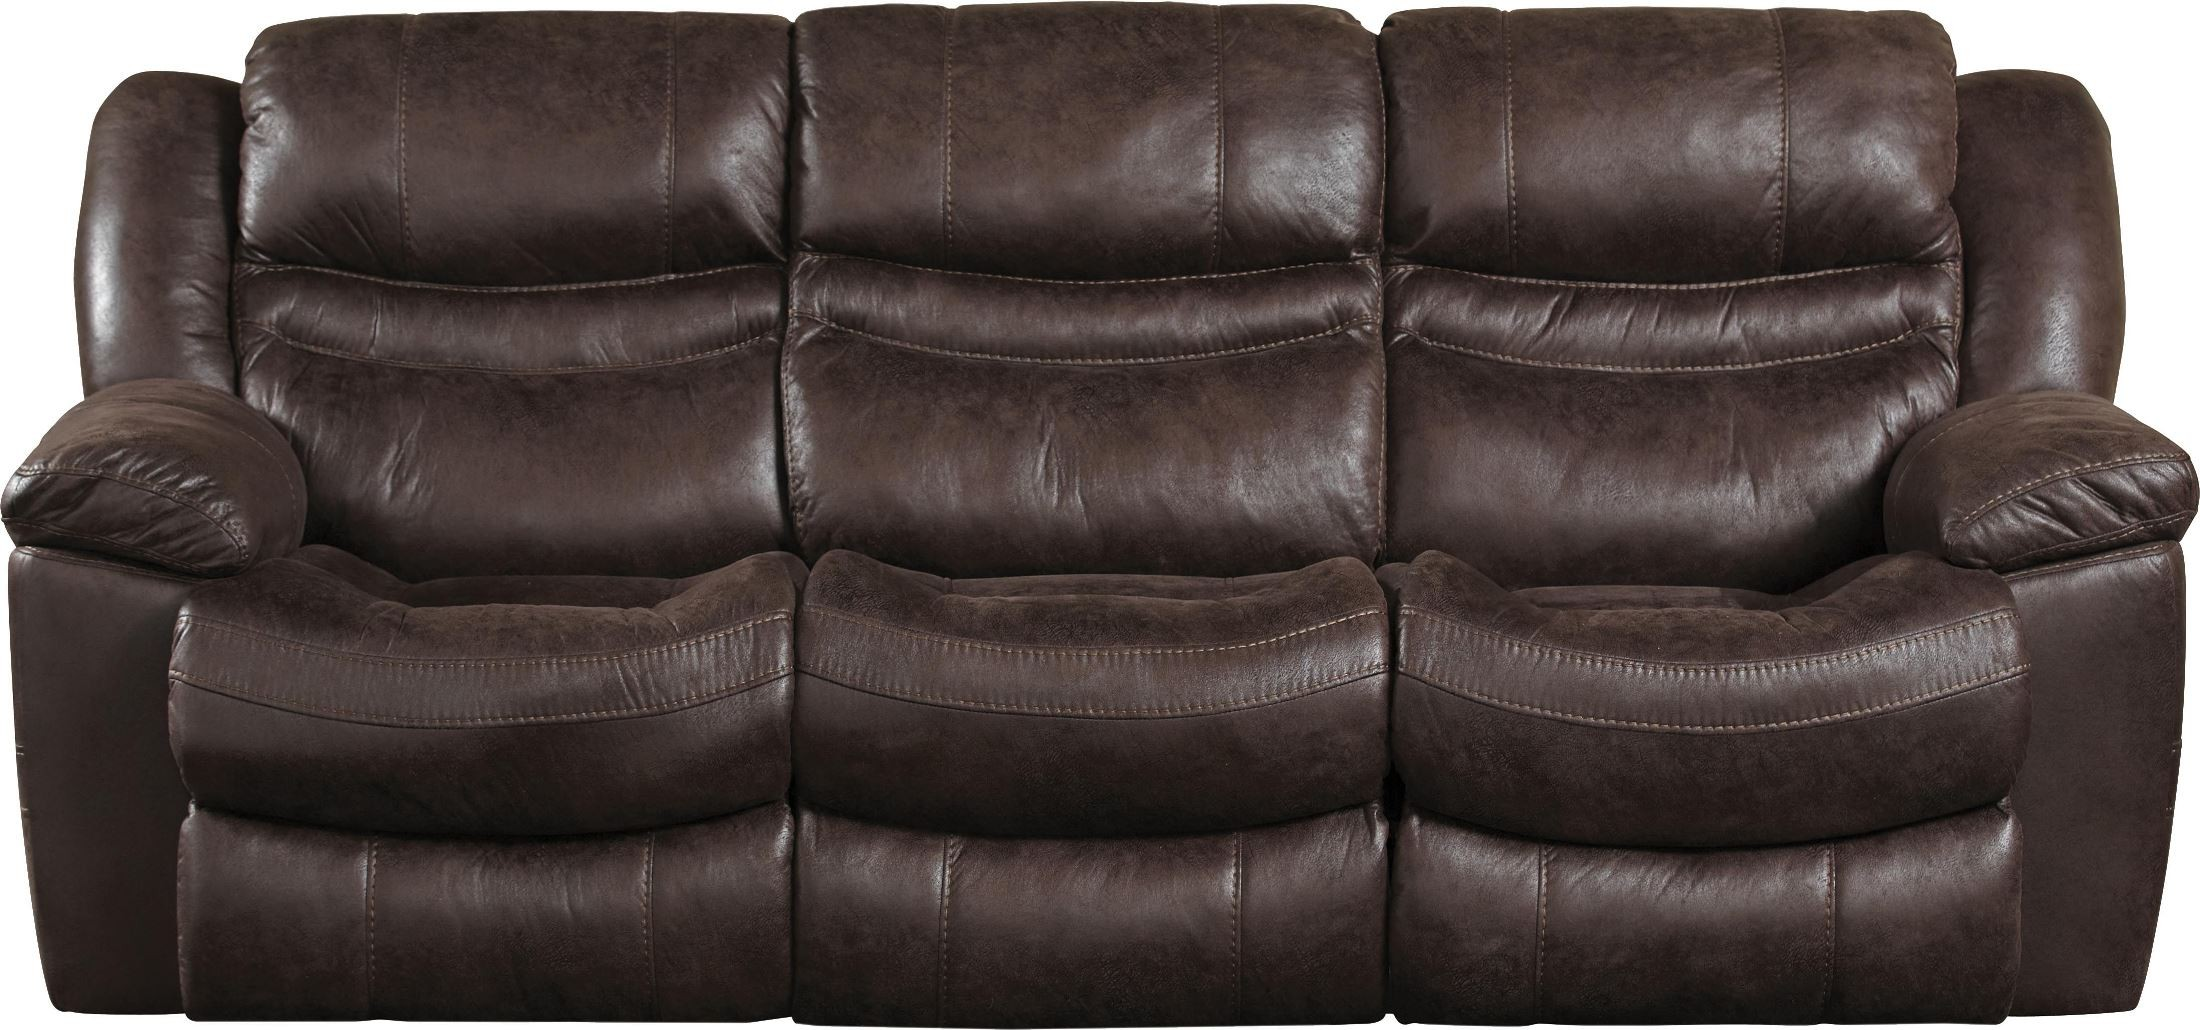 Valiant Coffee Reclining Sofa from Catnapper